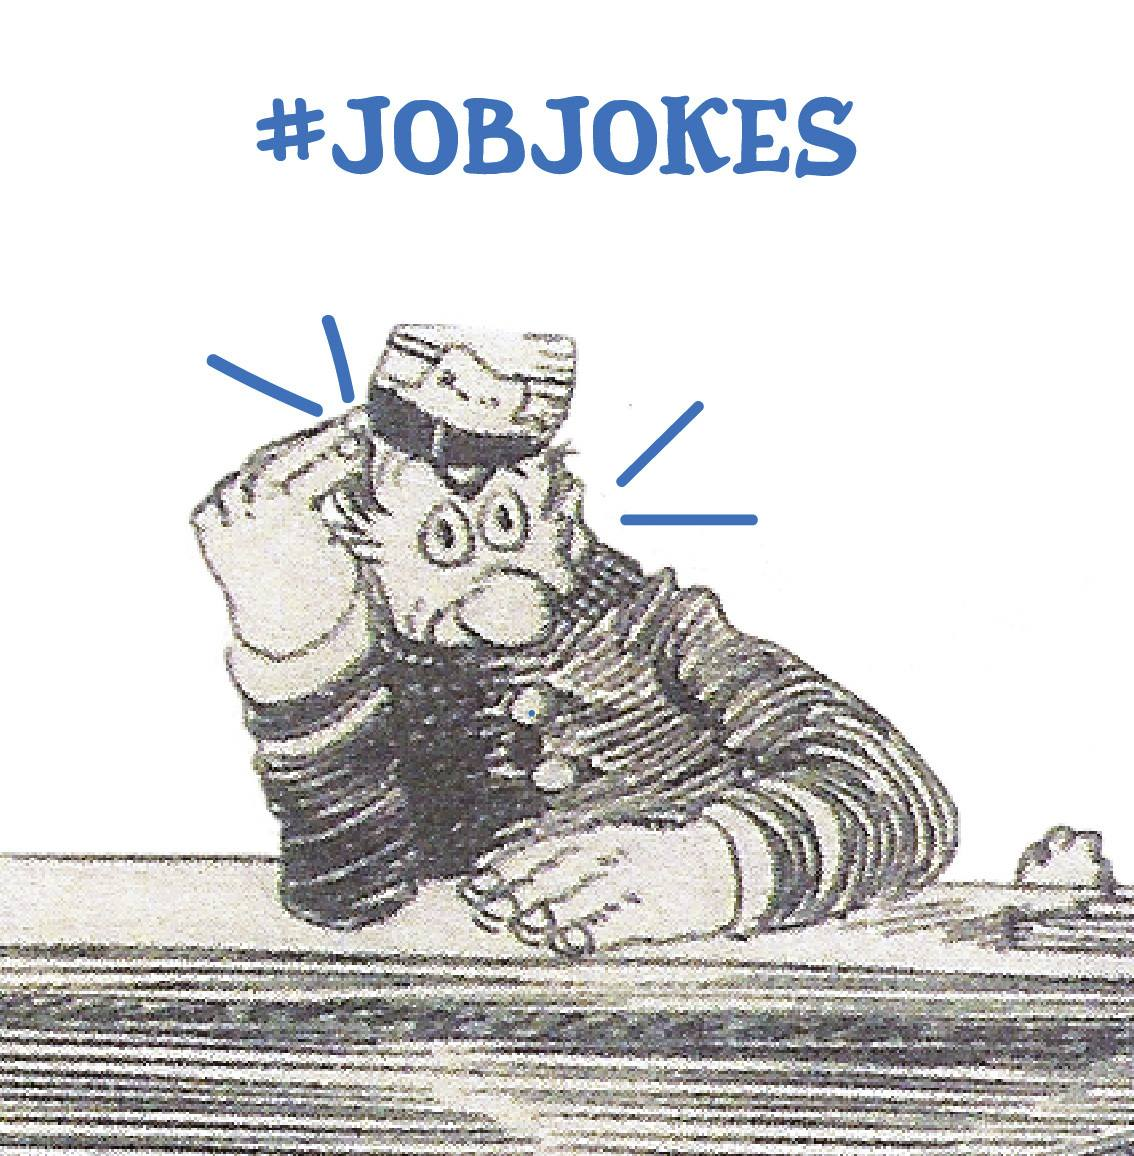 test Twitter Media - Help, I'm stuck in a cubicle posting about cartoons! It could be worse; I could be stuck in a cartoon posting about cubicles. #JobJokes https://t.co/Am7tt2nTTo